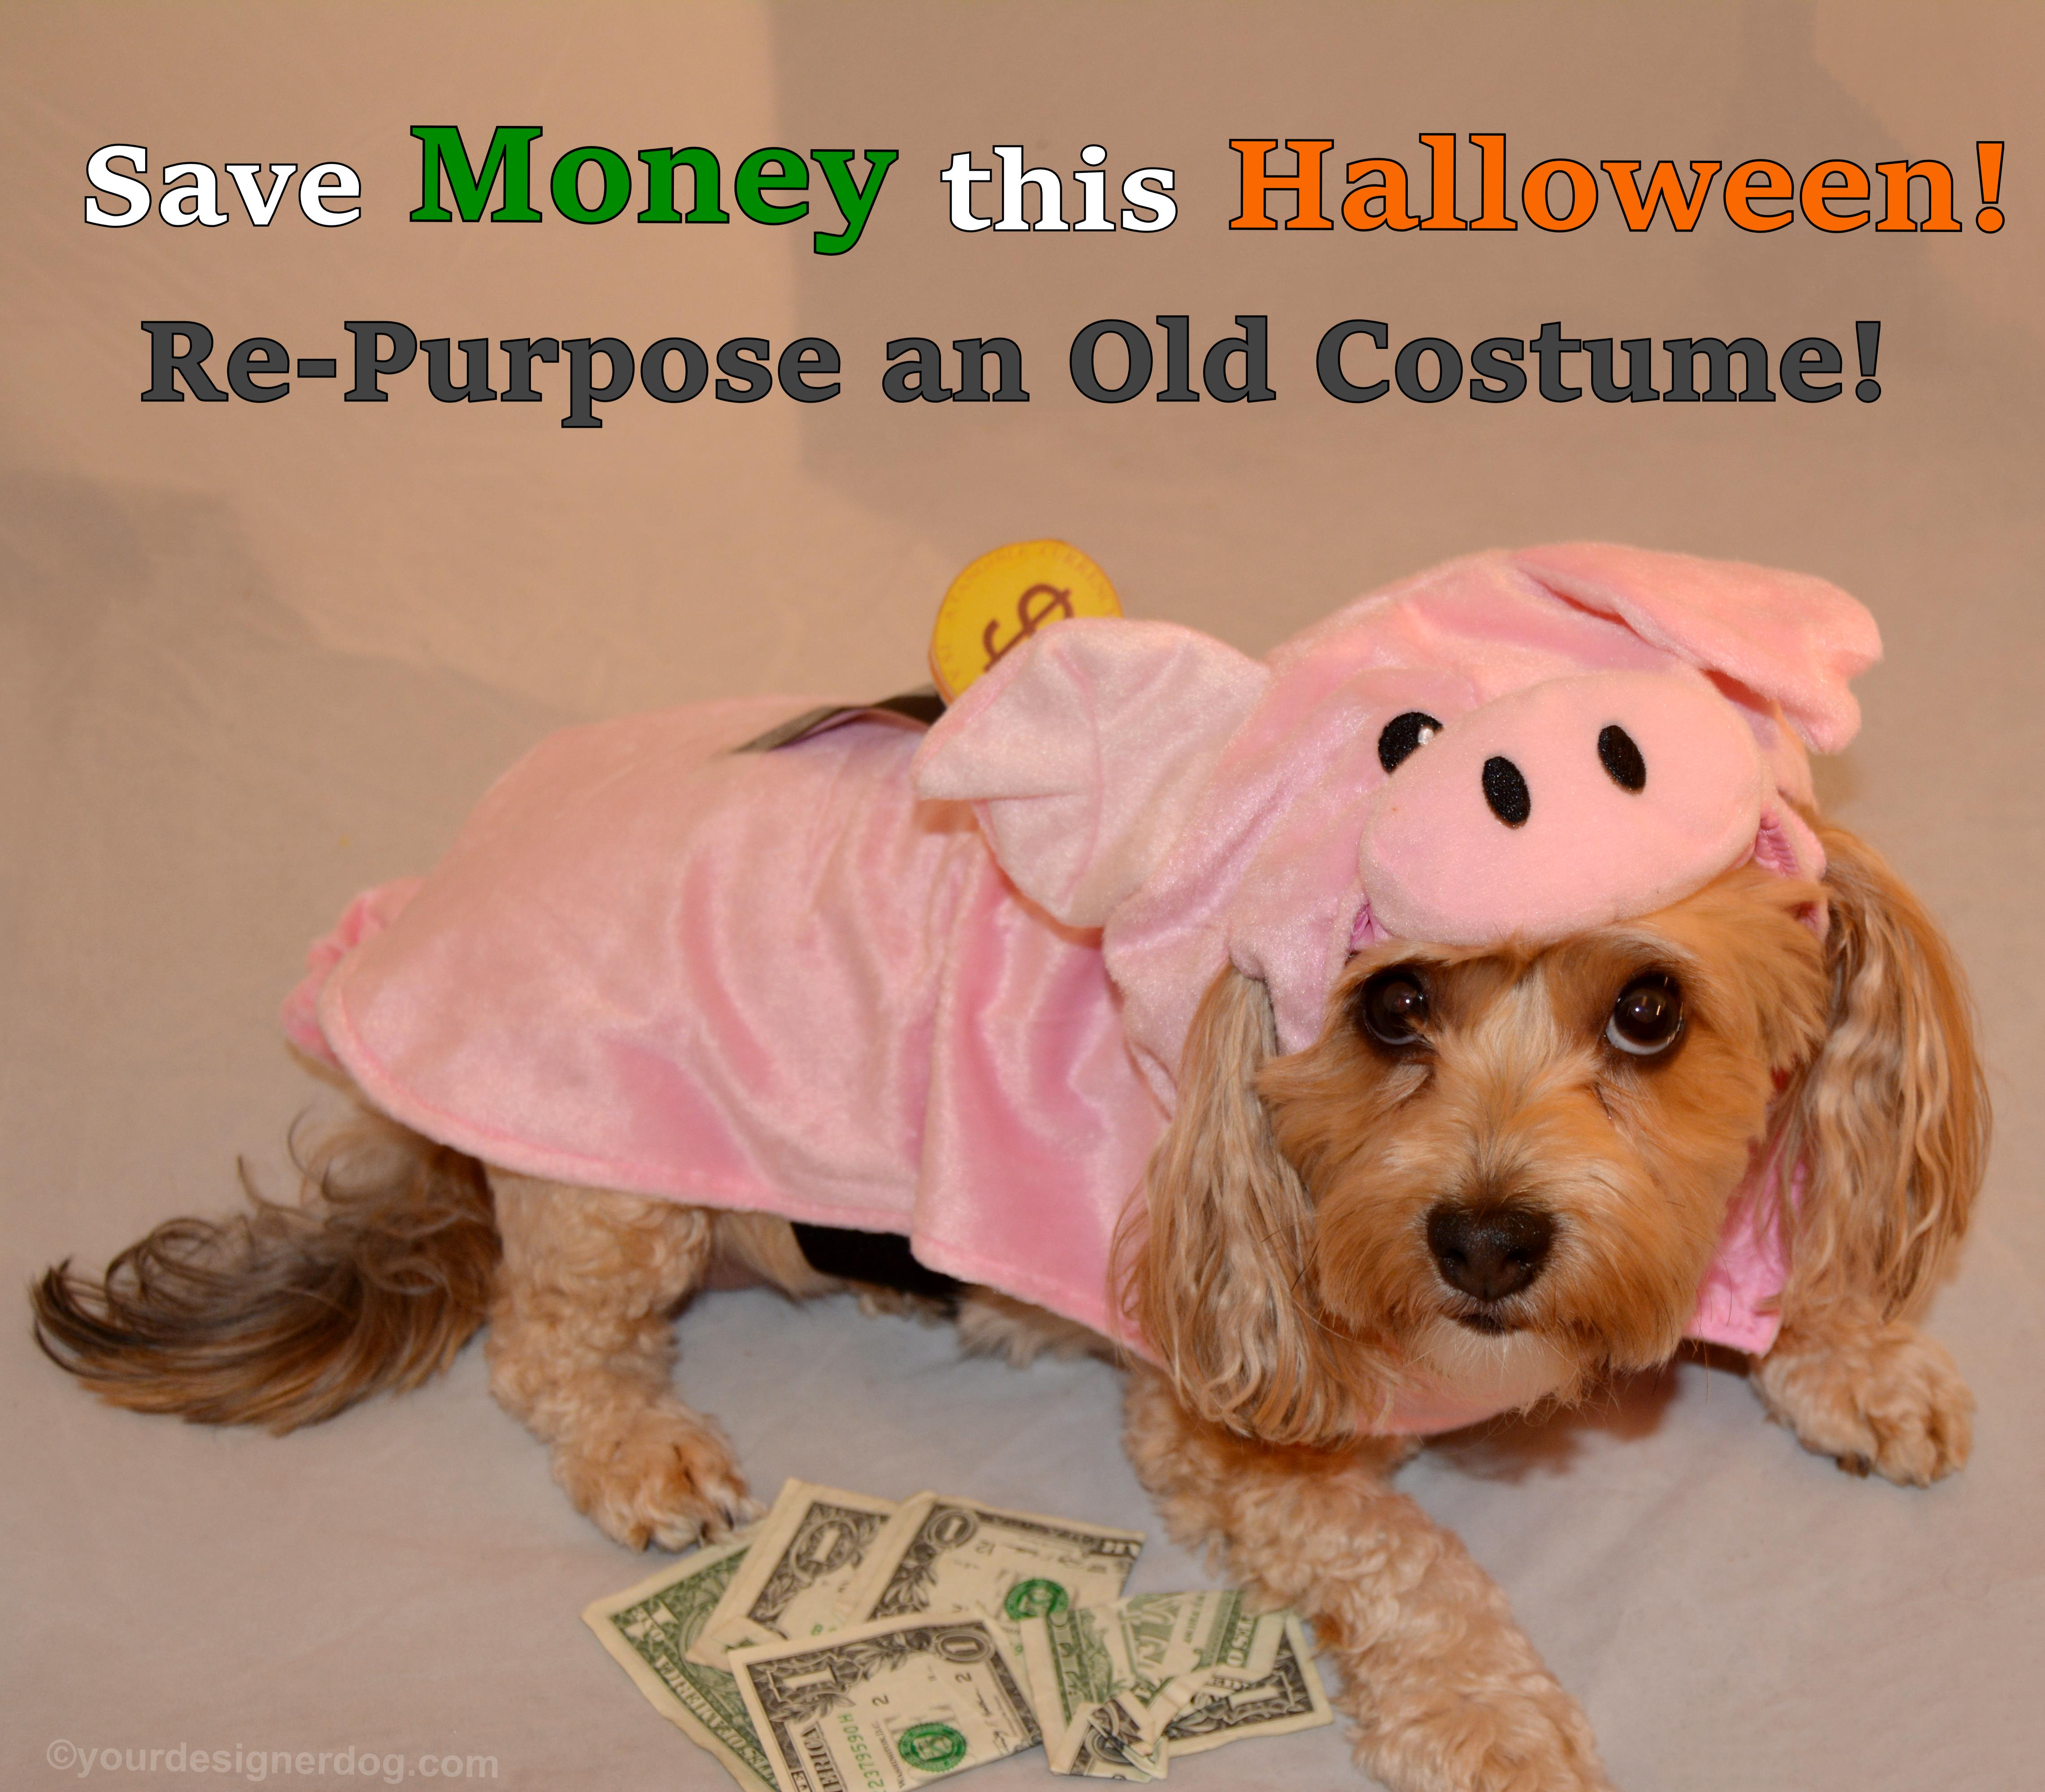 Save Money This Halloween – Re-Purpose an Old Costume!